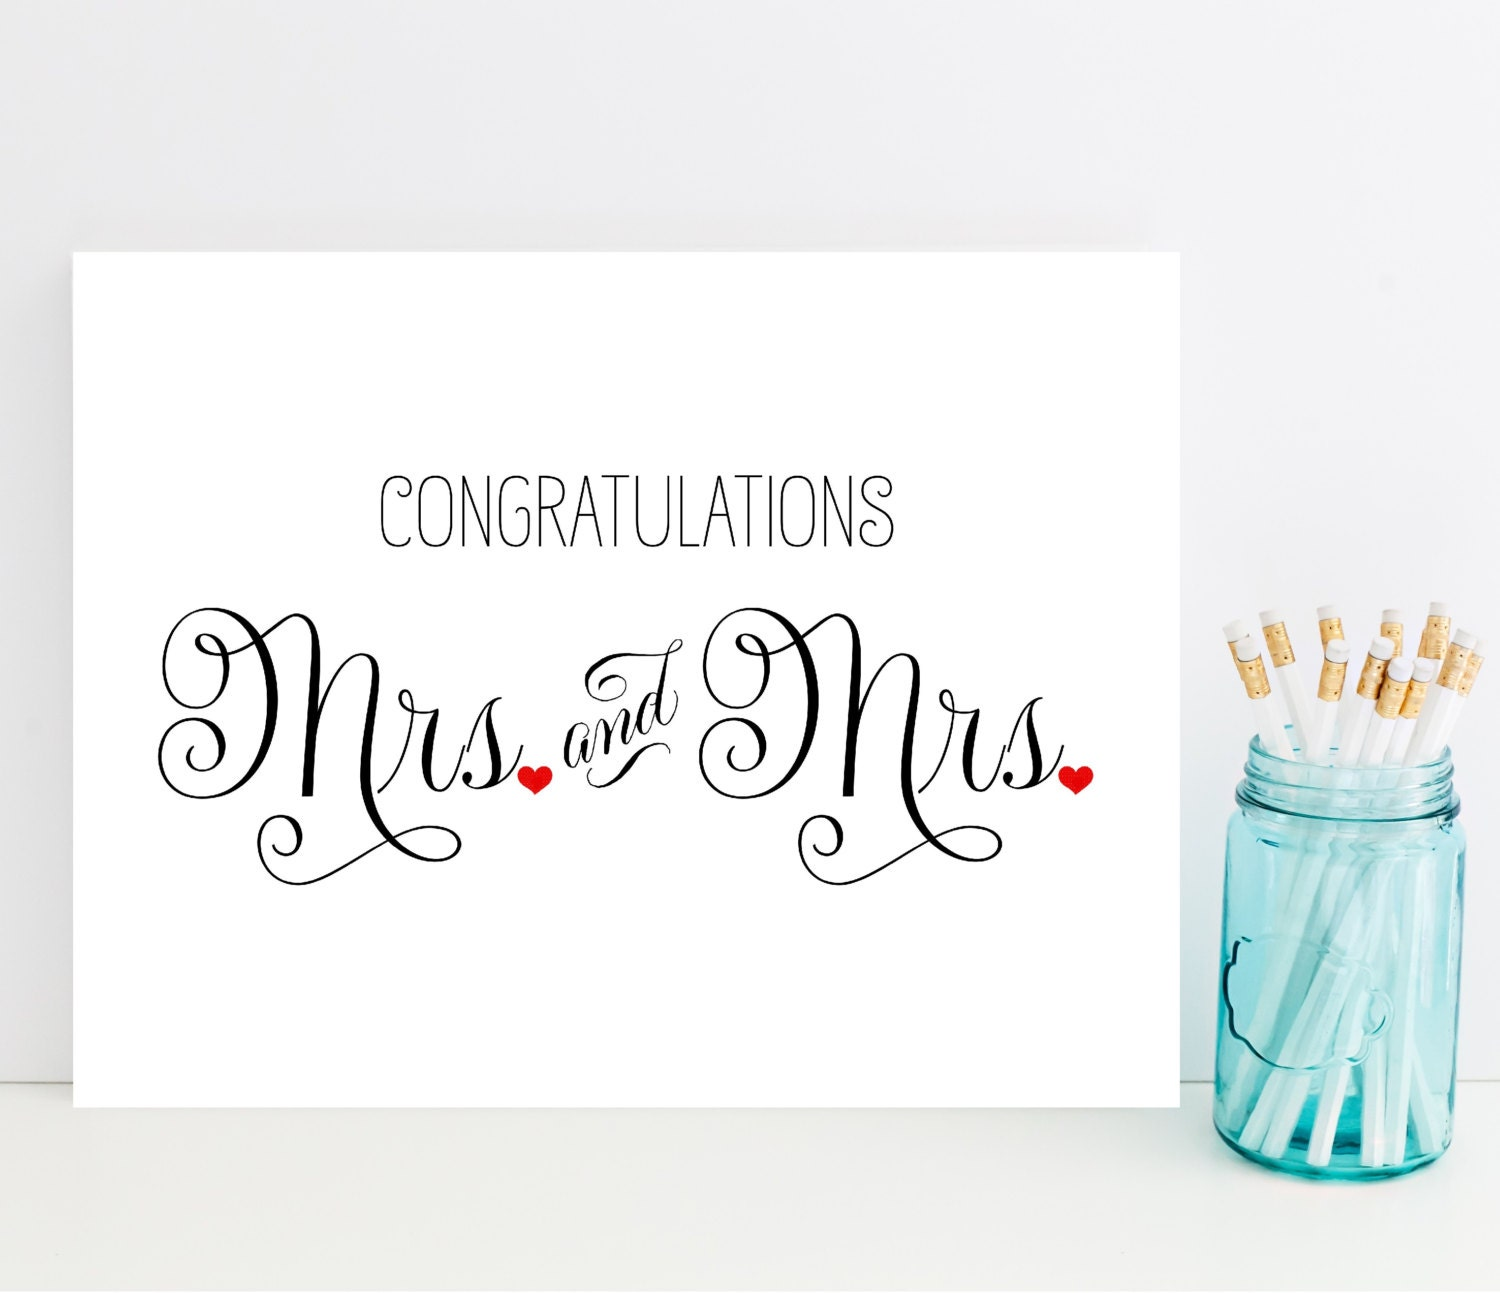 Mrs and Mrs Congratulations Card Wedding Card for Lesbian